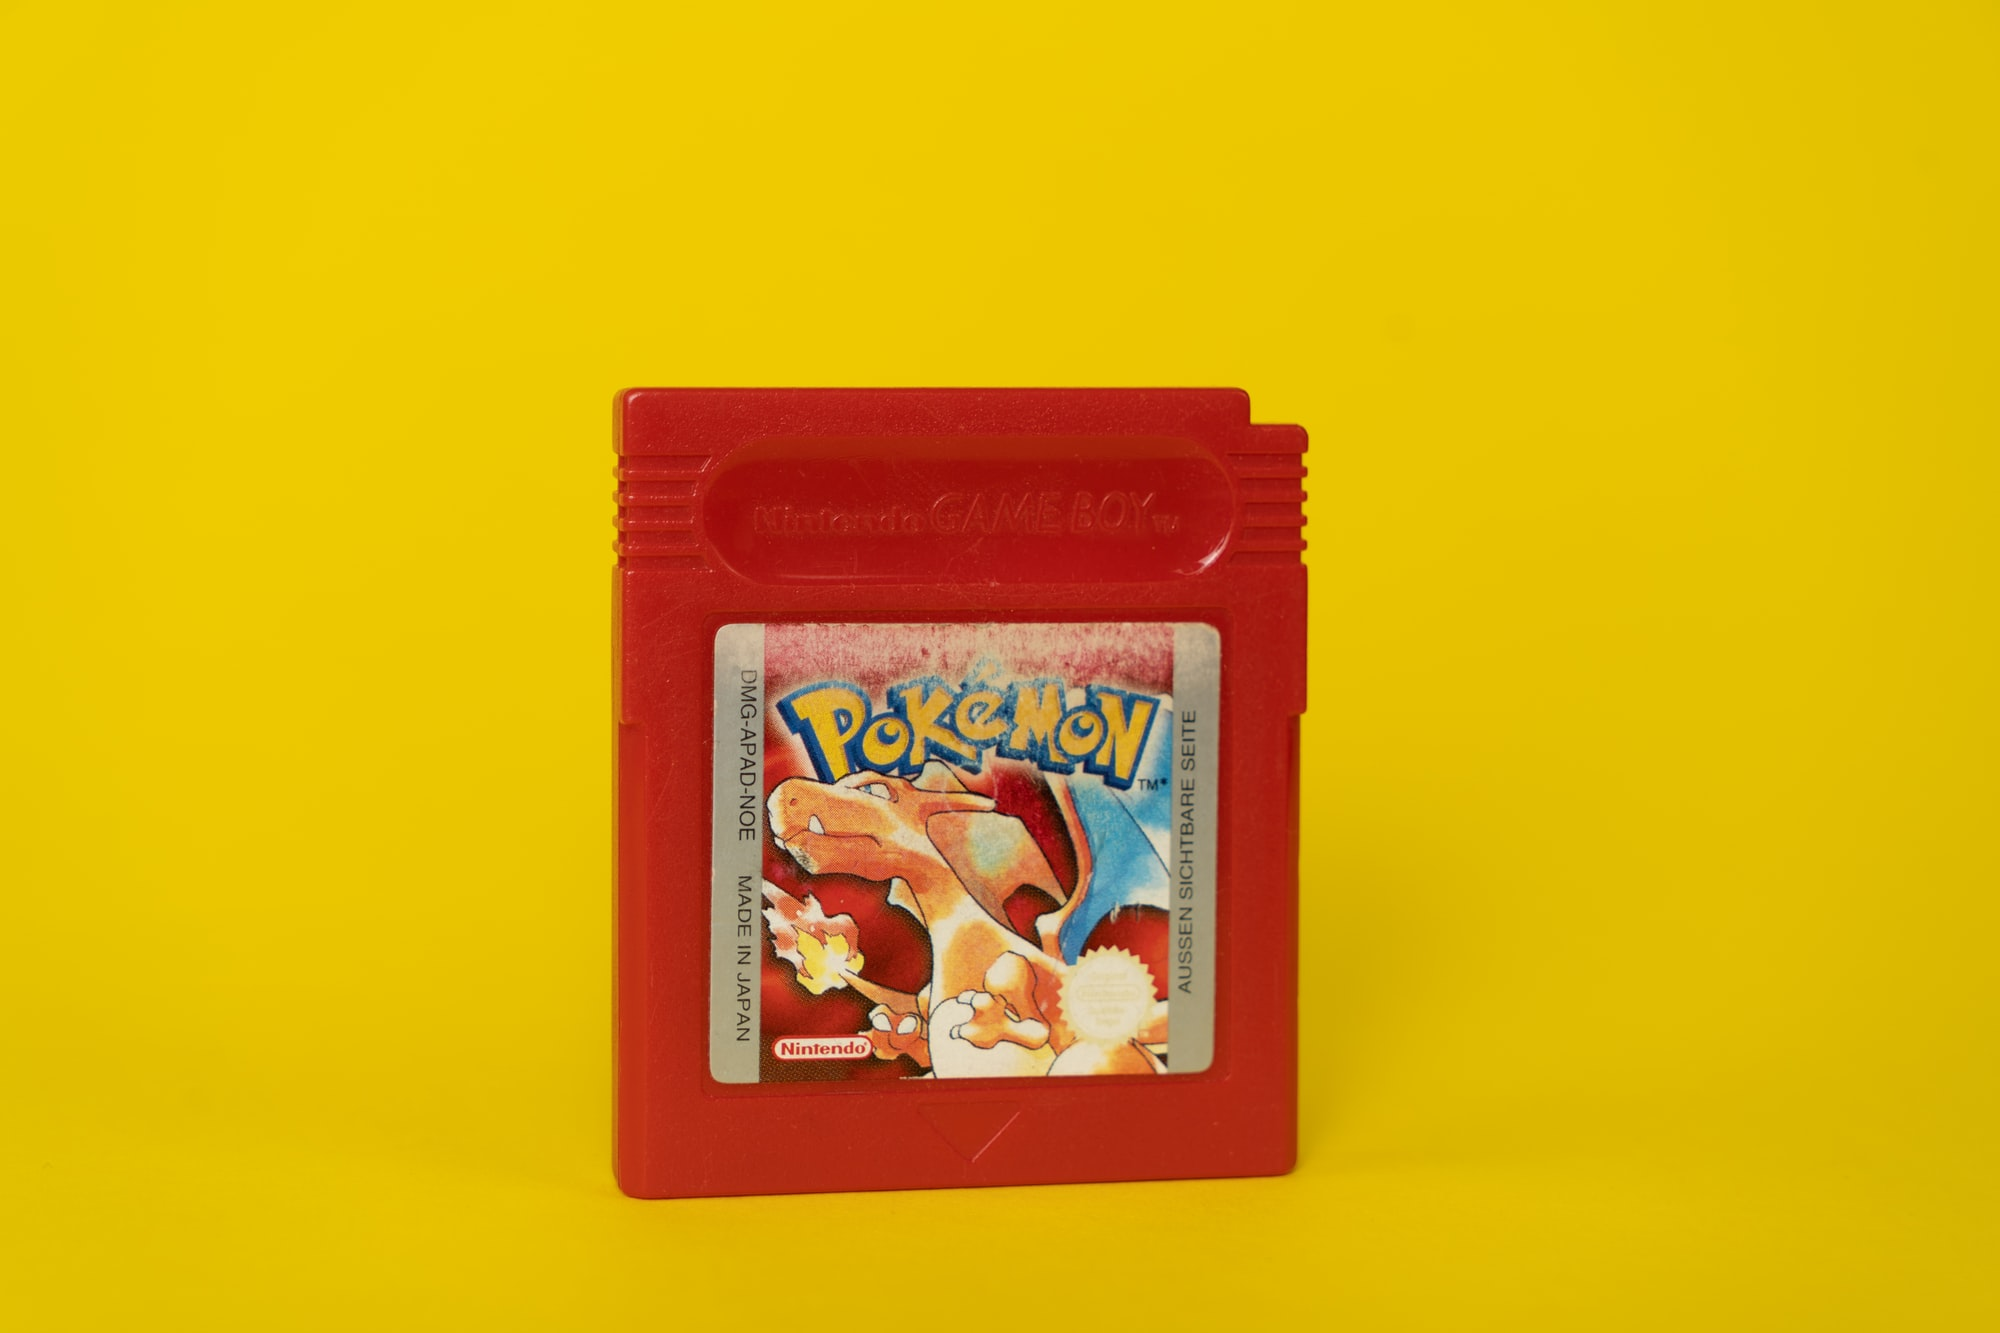 Pokemon red edition as played looooong hours in my youth. :)